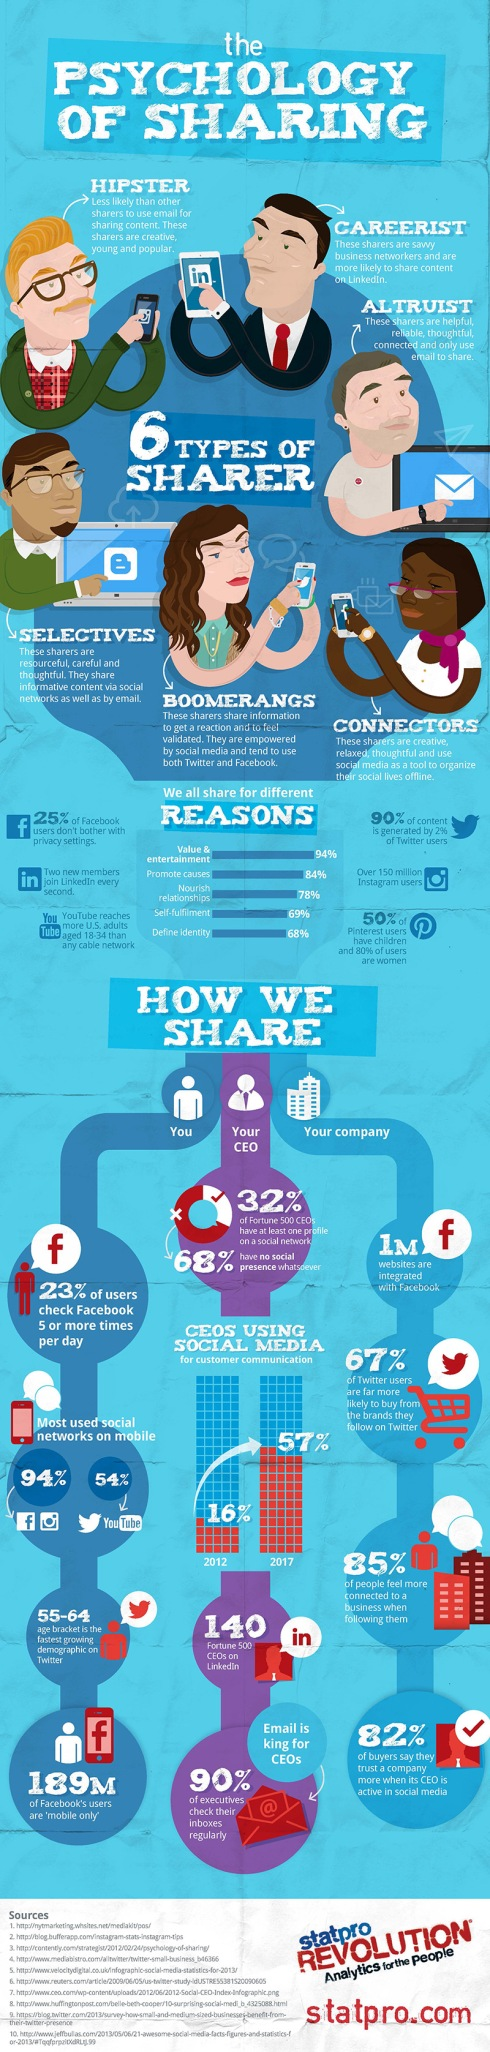 The Psychology of Sharing Infographic - Thanks for Sharing